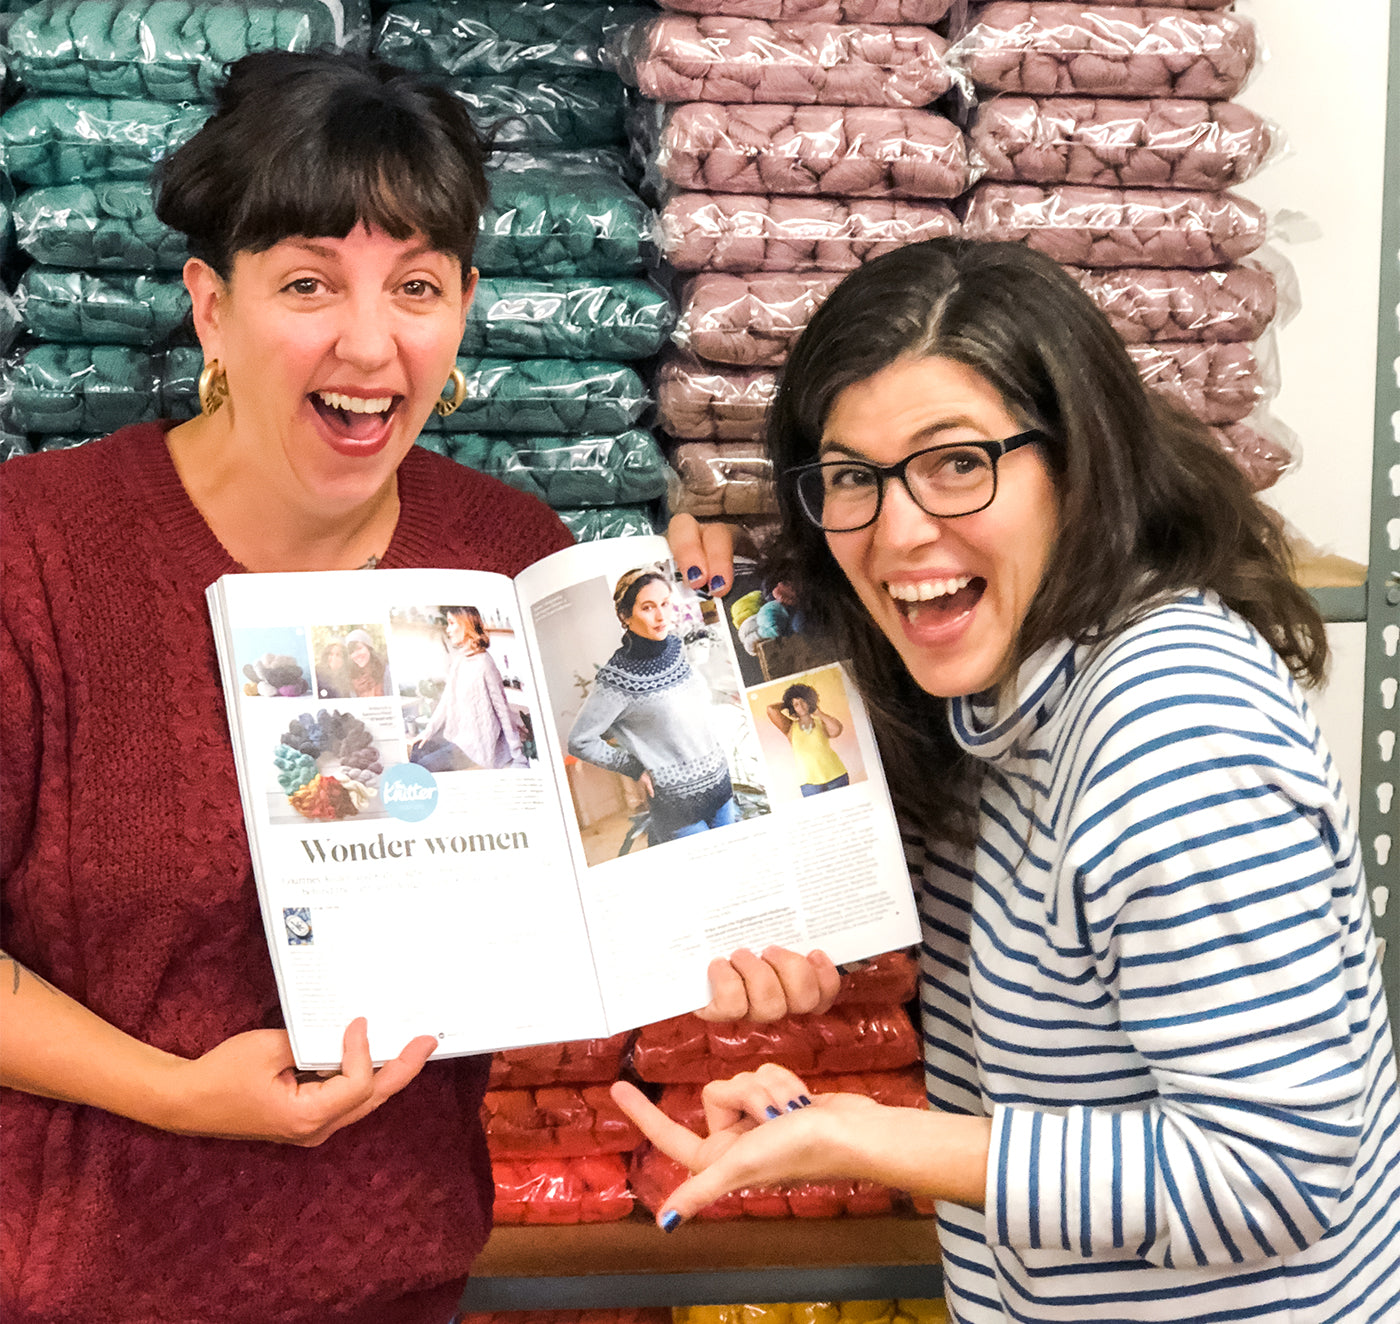 This is an image of two women holding a book open laughing in front of a wall of yarn.